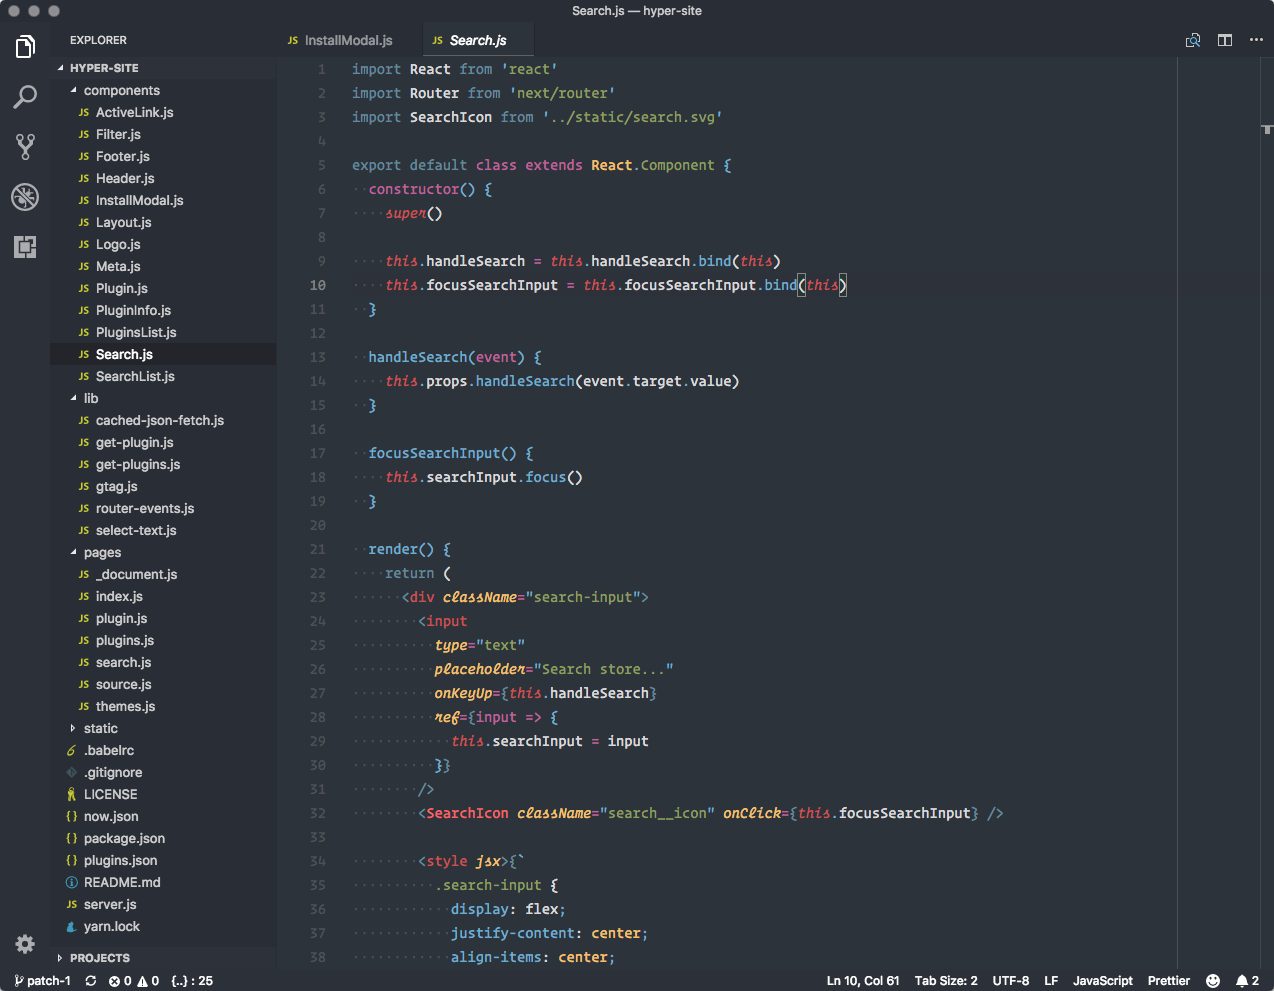 12 Best dark themes for text editors as of 2019 - Slant